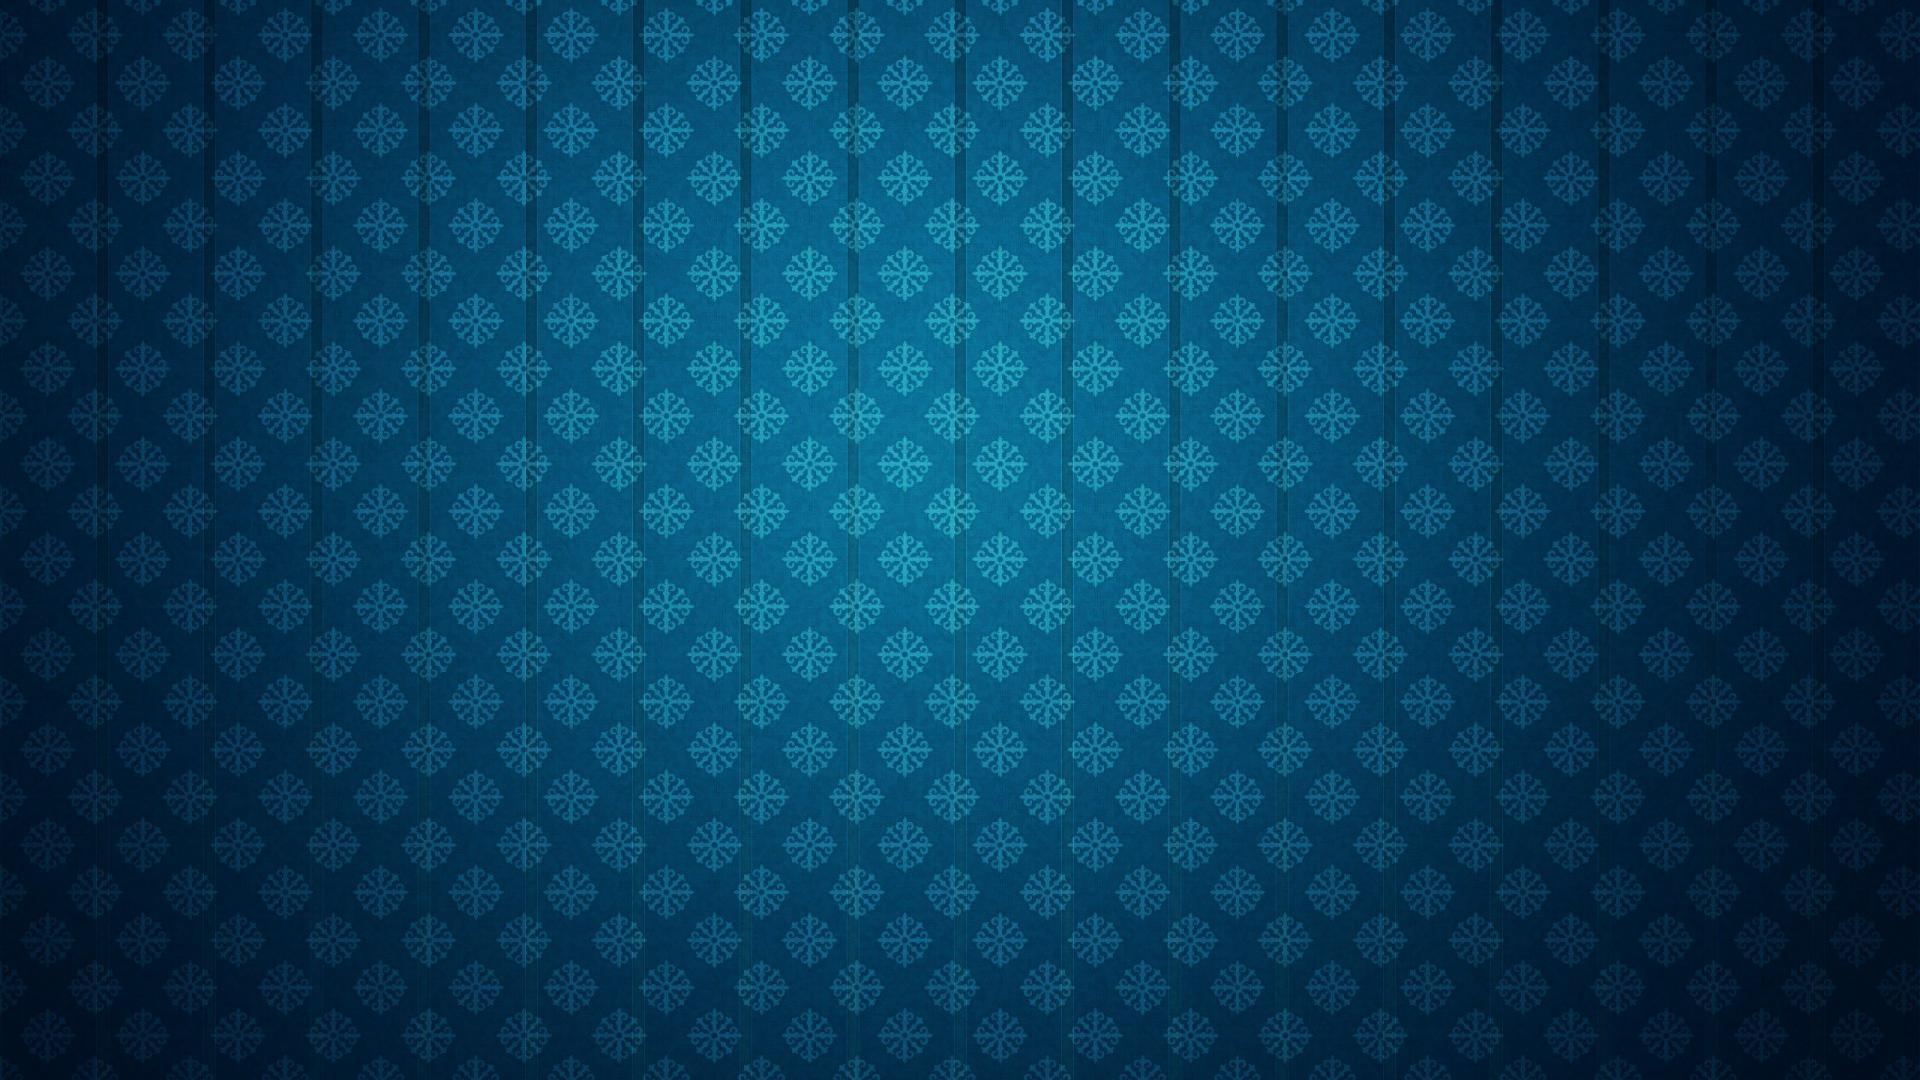 1920x1080 abstract beautiful Blue design backgrounds wide wallpapers 1920x1080